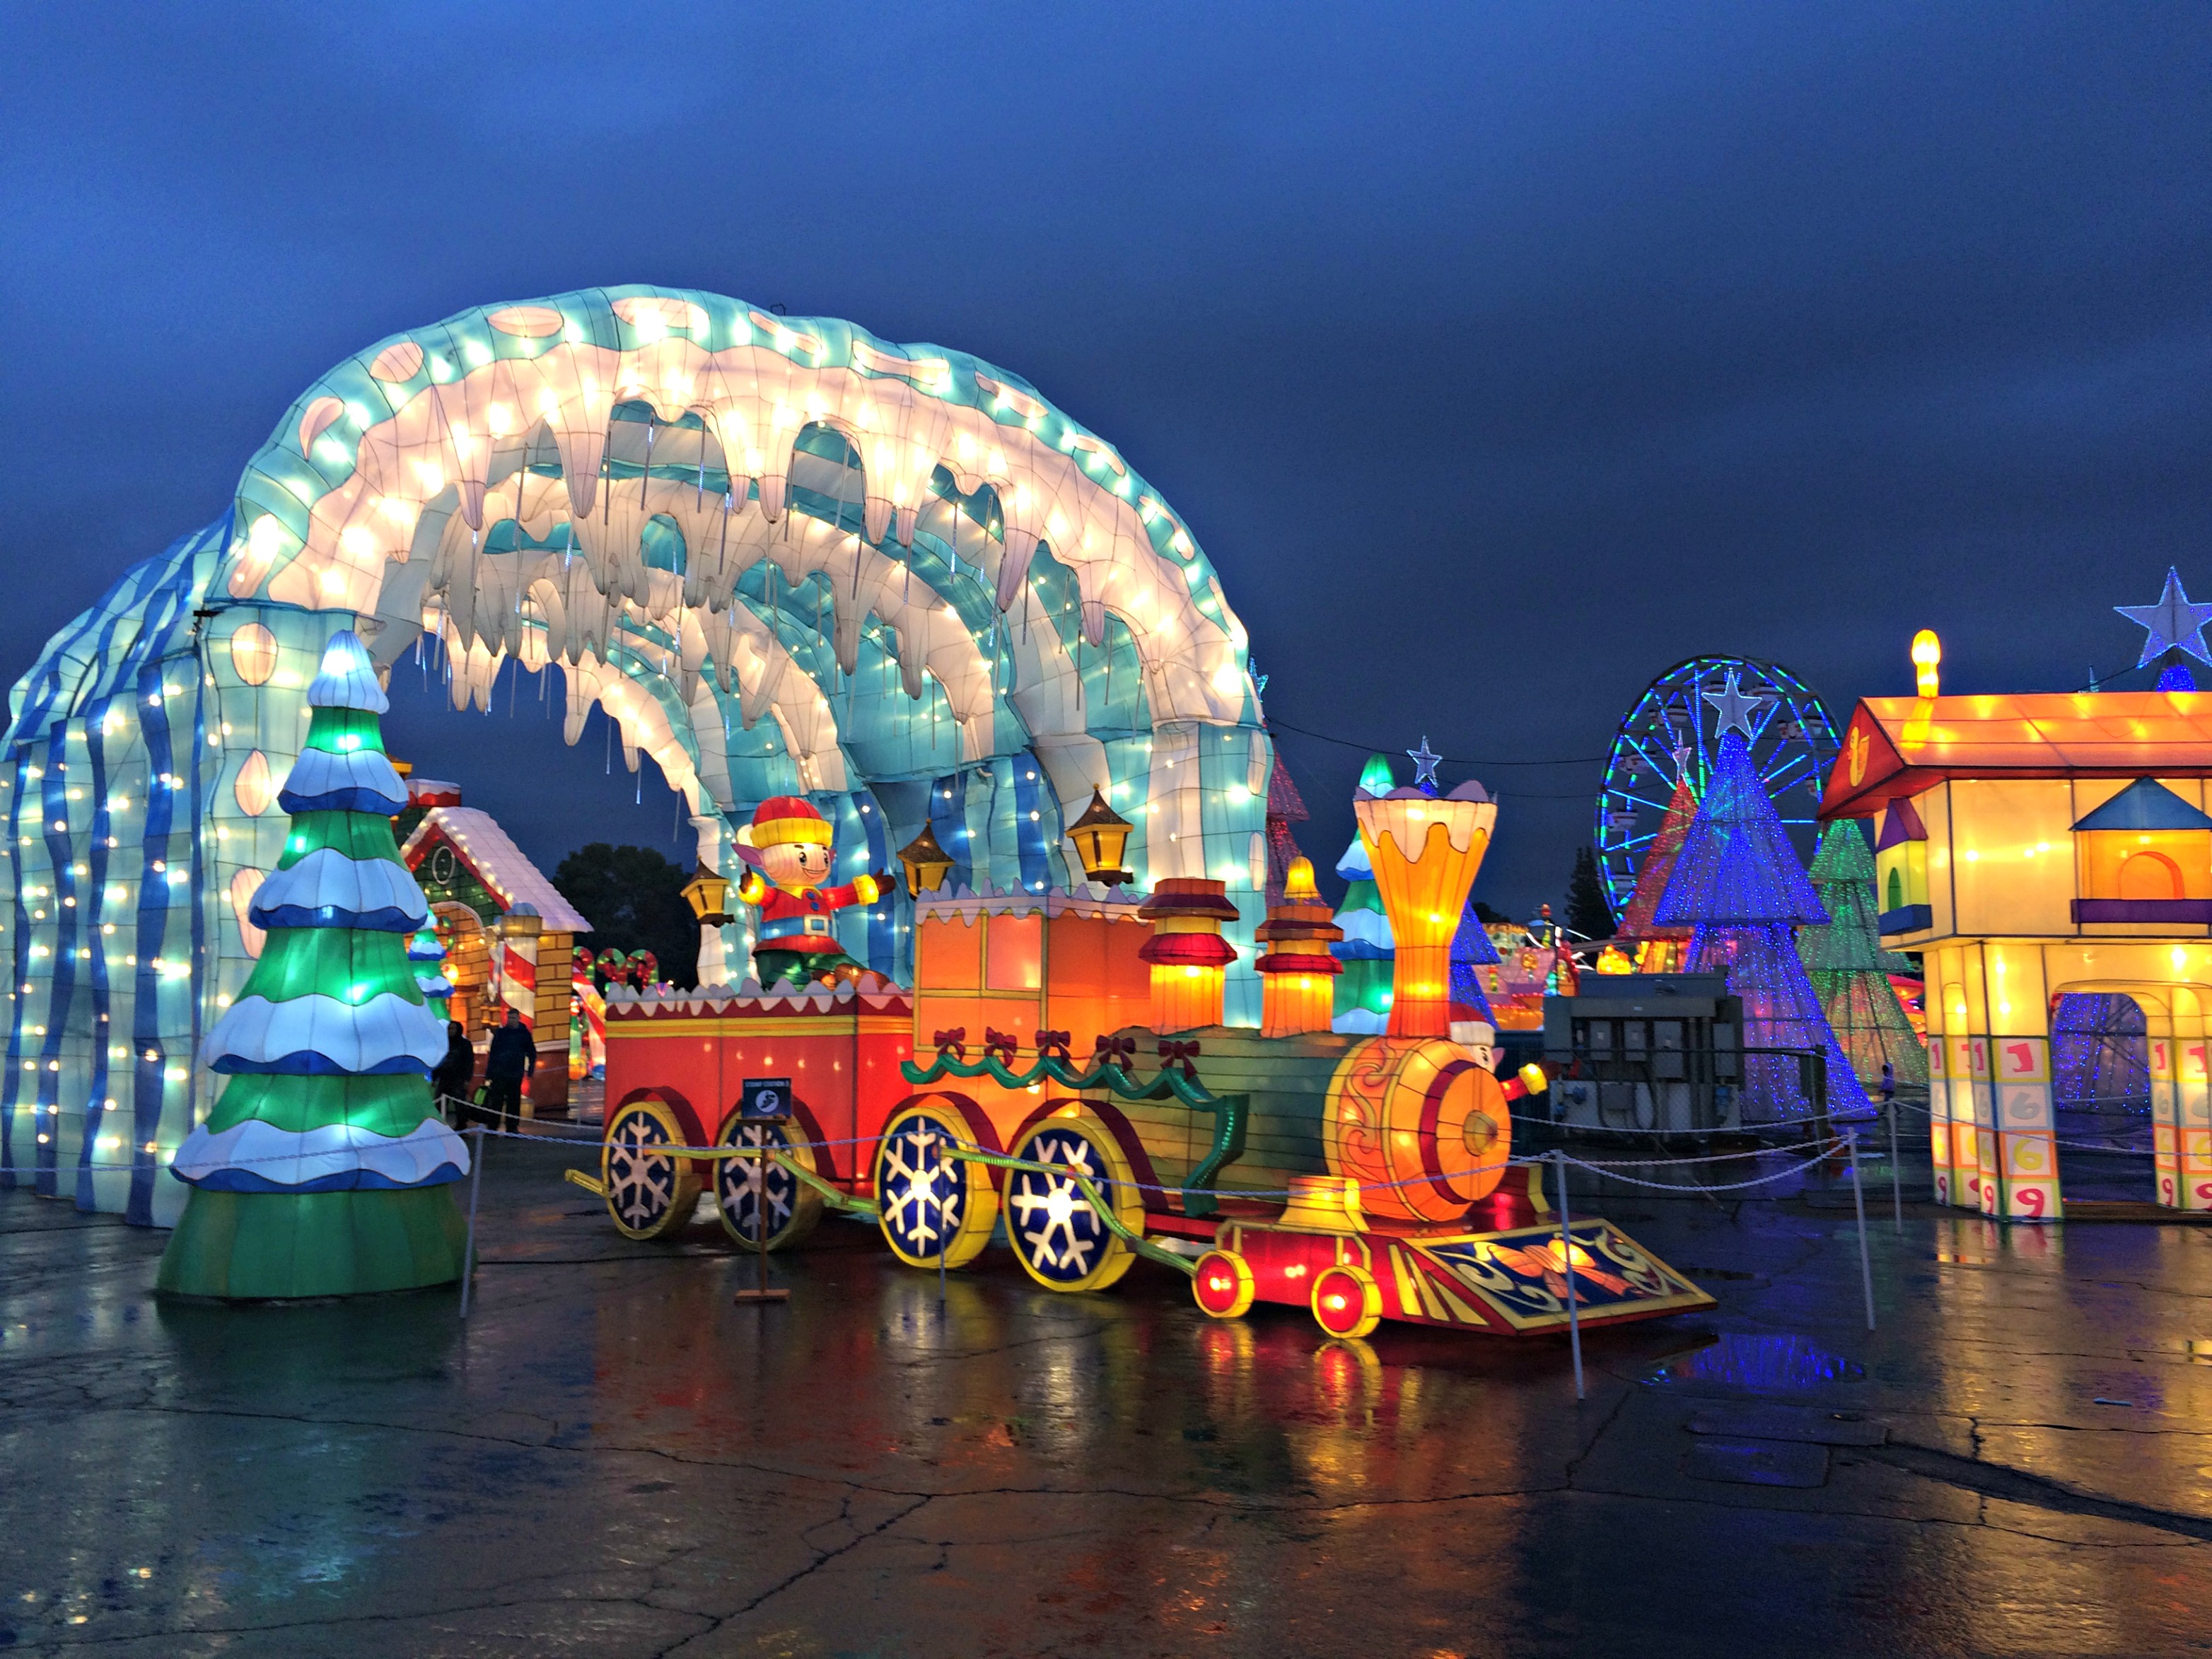 global winter wonderland is back for its third year at sacramentos cal expo